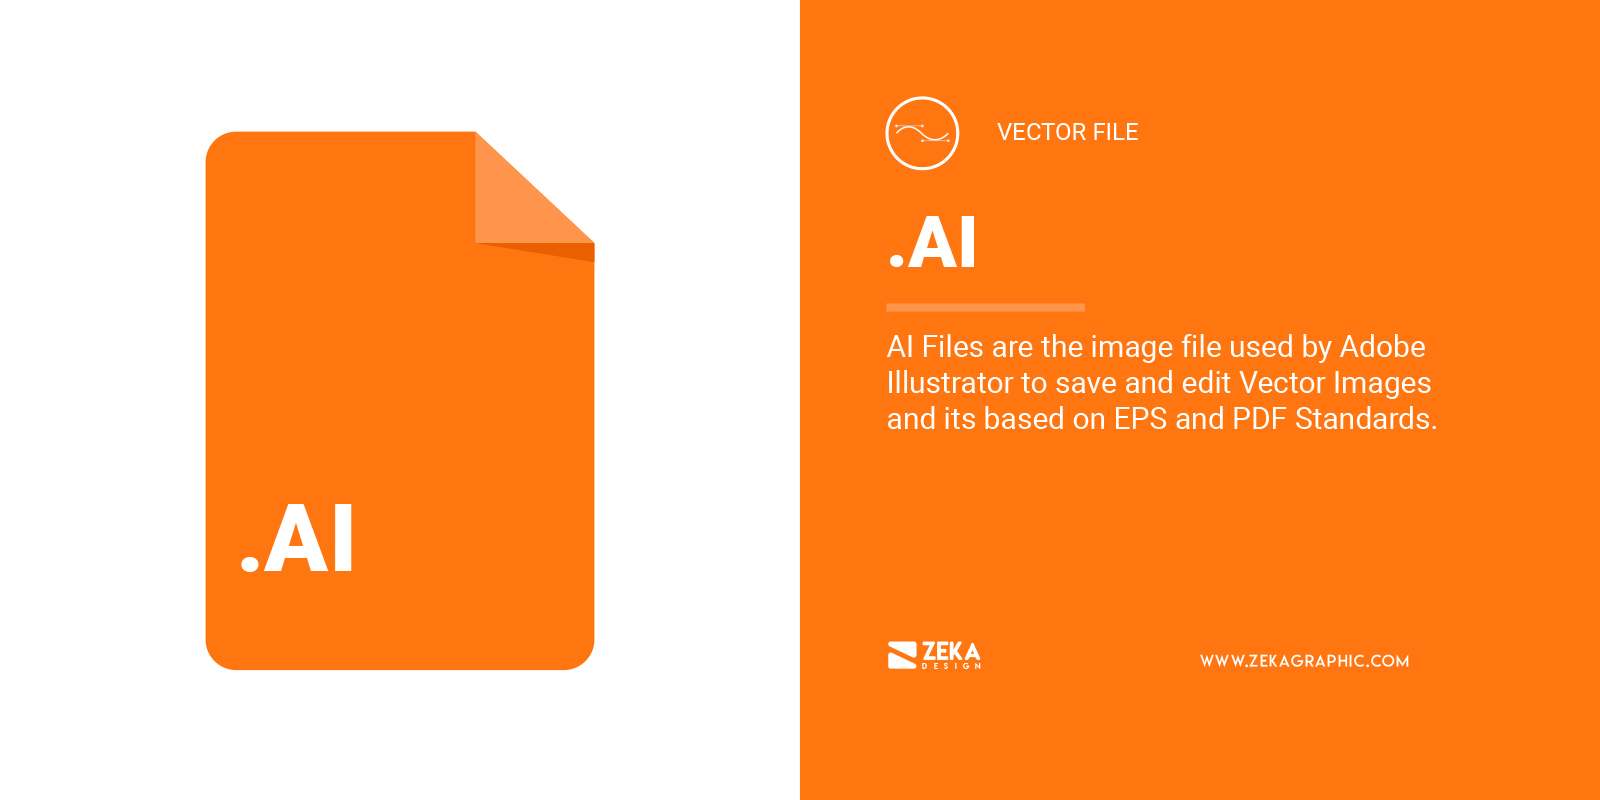 AI File Format in Graphic Design Explained